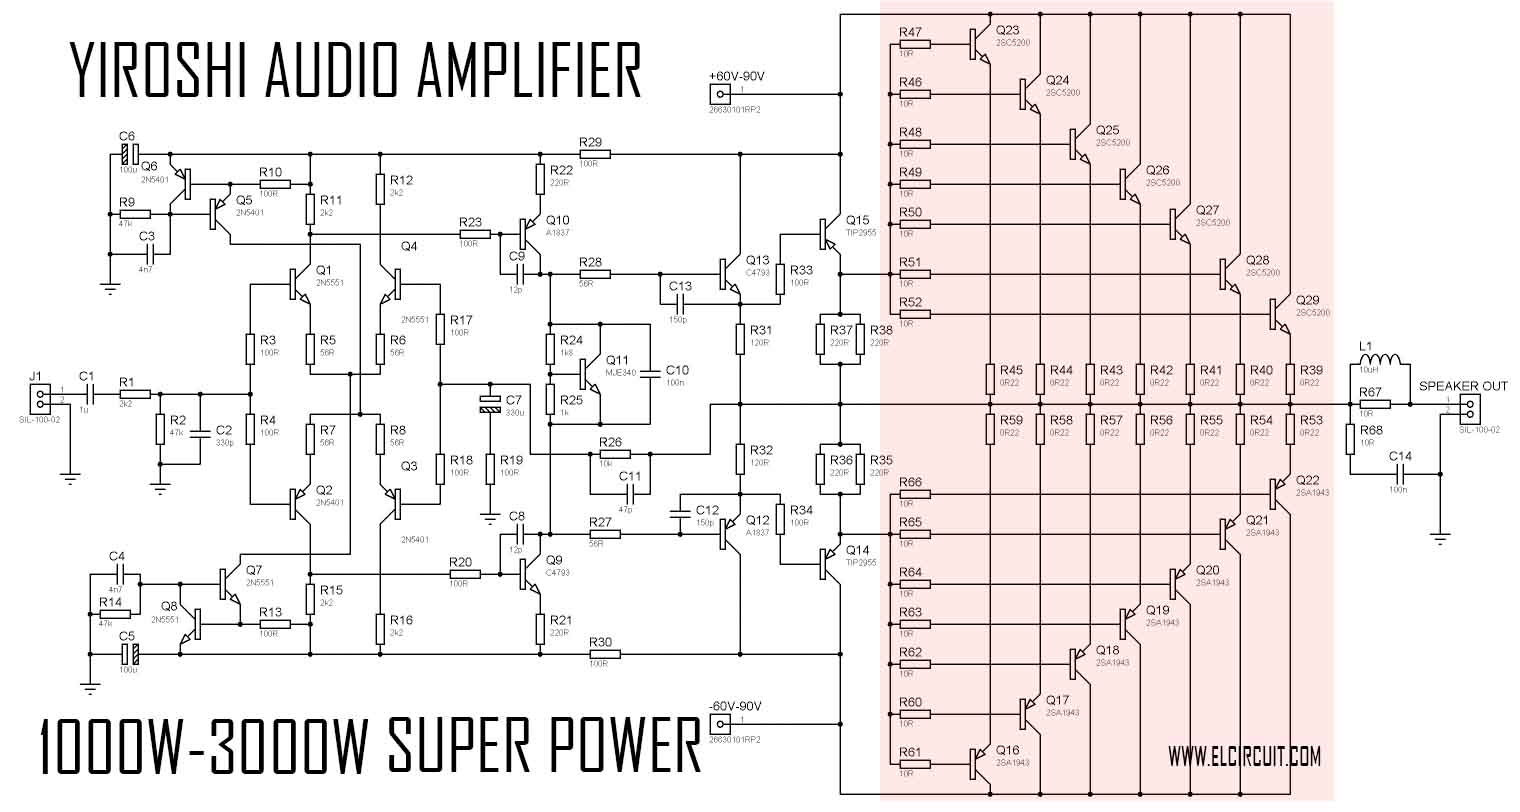 Super Power Amplifier Yiroshi Audio 1000 Watt Electronic Circuit Yamaha  Power Amplifier Circuit Diagram 1000 Watt Audio Amplifier Circuit Diagrams